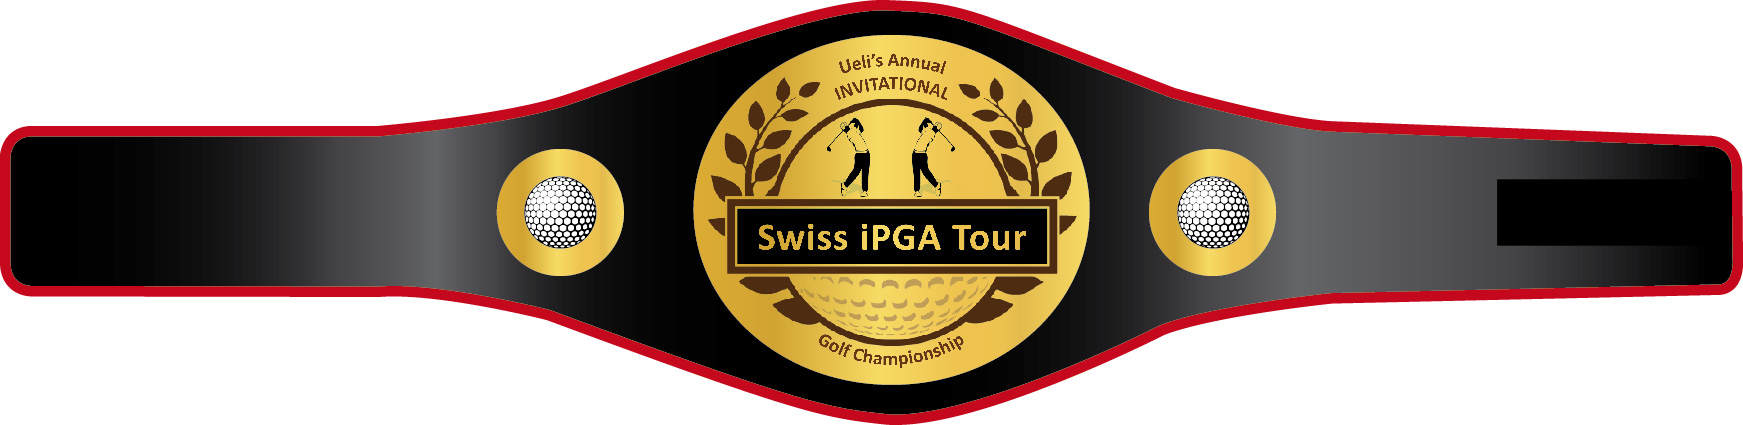 Swiss IPGA Tour Golf Champion Gürtel